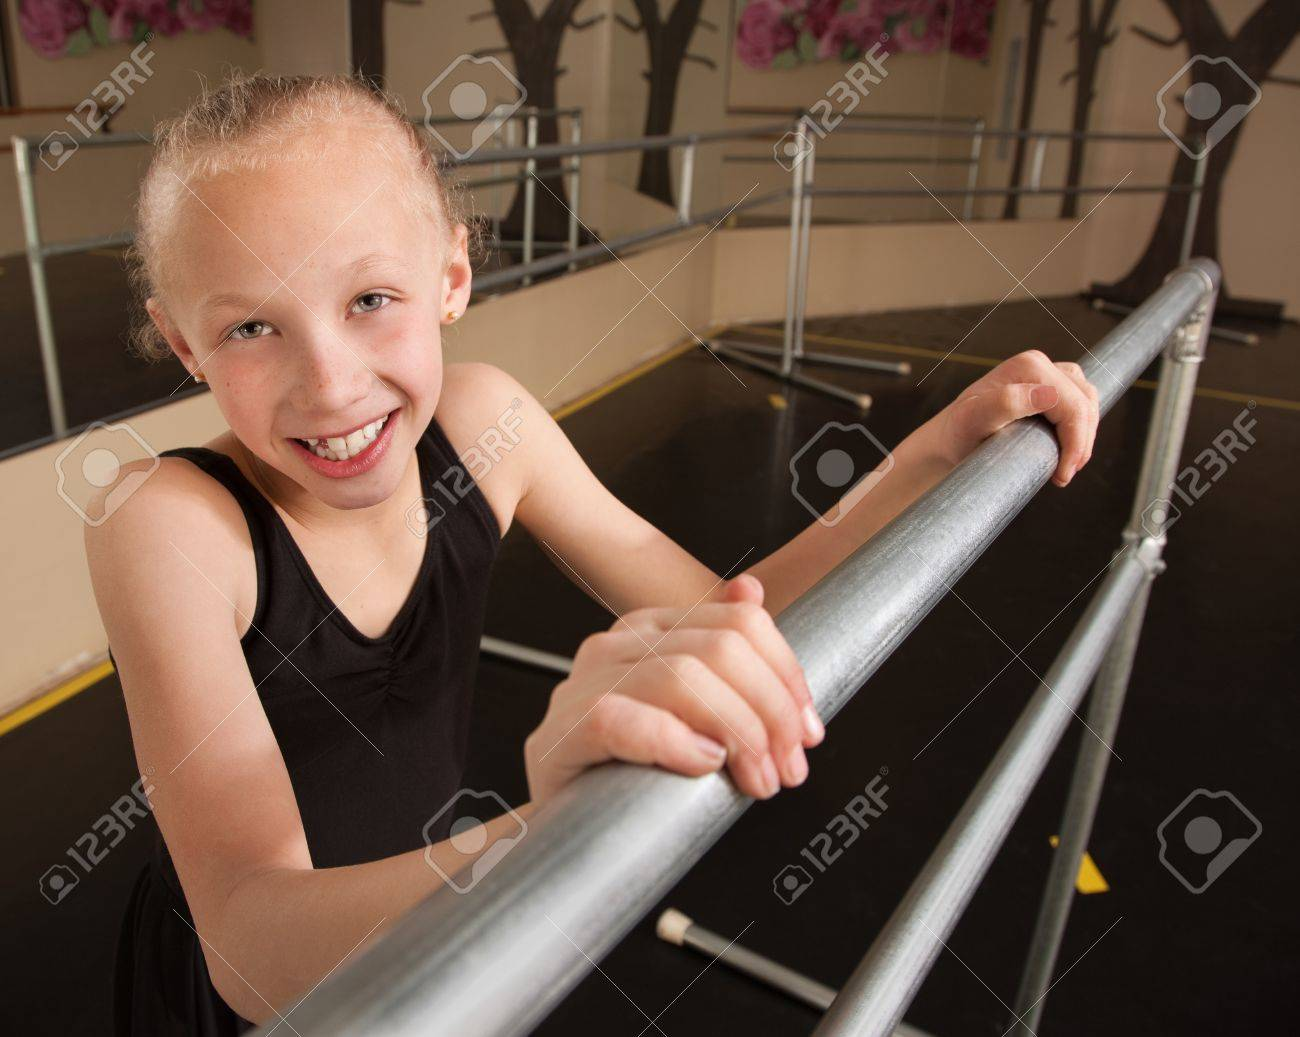 Young smiling ballet student holds railing in dance studio Stock Photo - 13649396